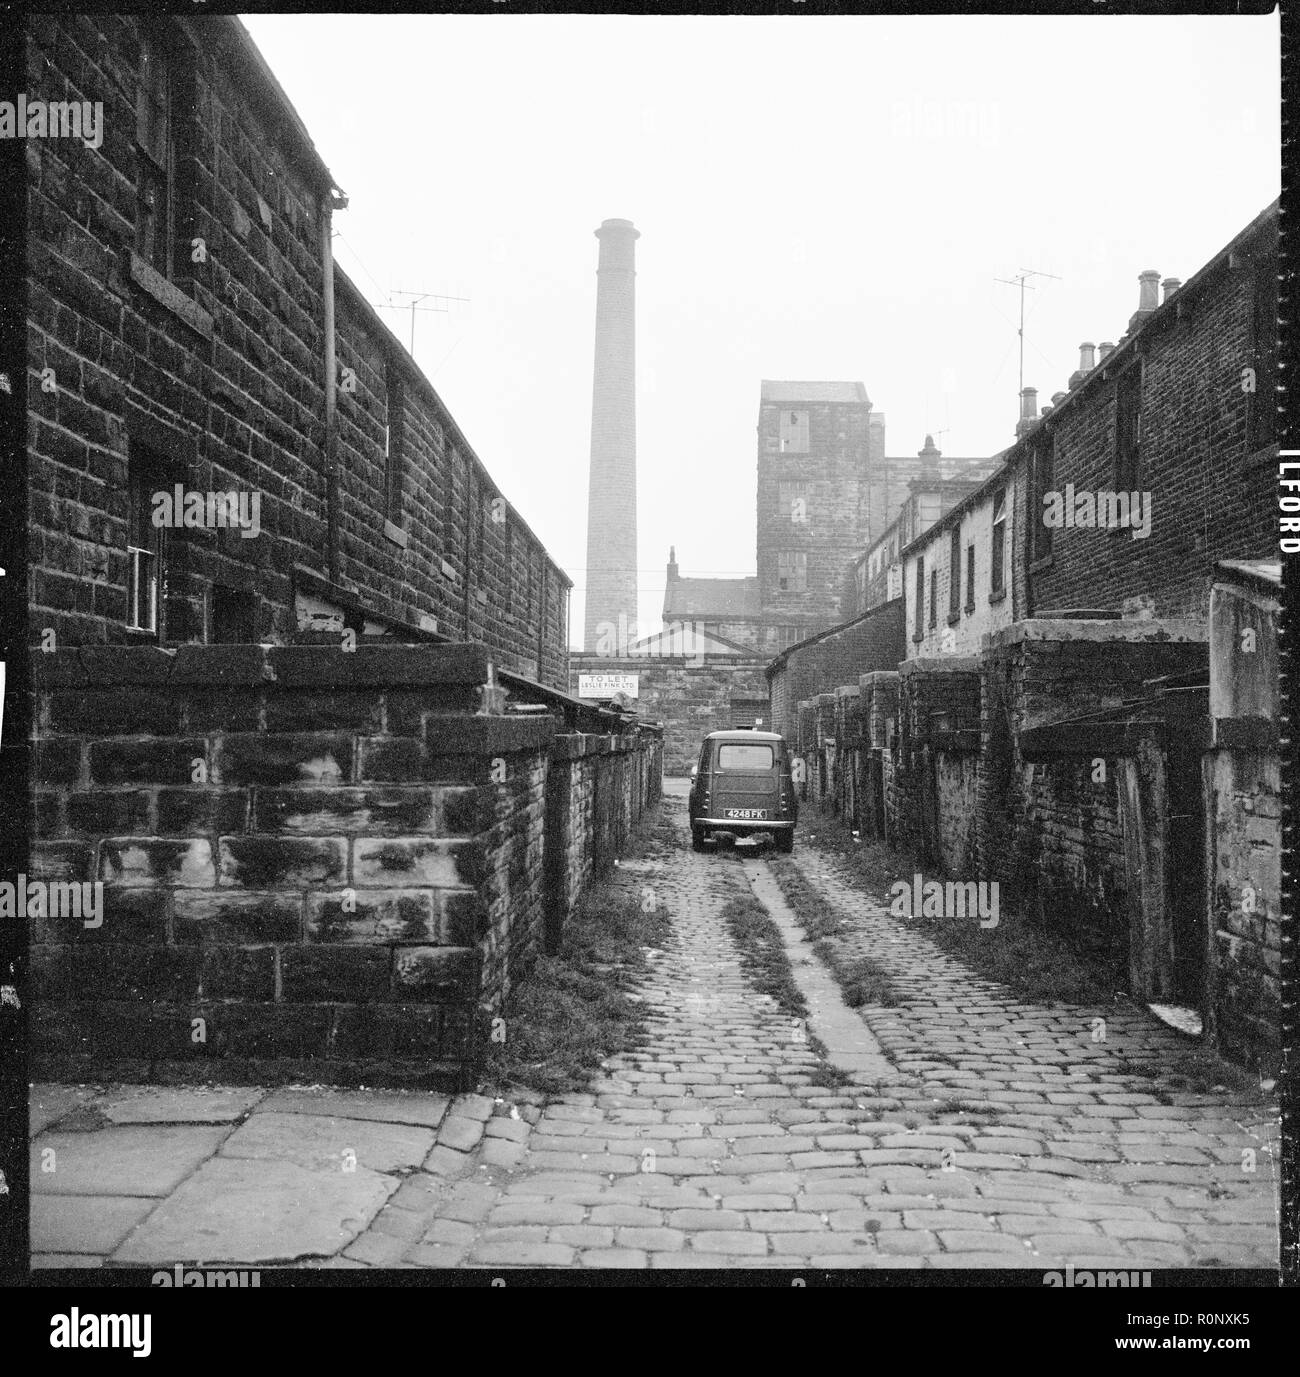 Richard Street, Burnley, Lancashire, c1966-c1974. A car parked in the cobbled ginnel (alley) running between Milton Street and Tentre Street viewed from Richard Street with Pentridge Mill and mill chimney partially visible in the background. The terraces shown here were demolished in the late 1960s. Holly House flats now occupies the site. - Stock Image